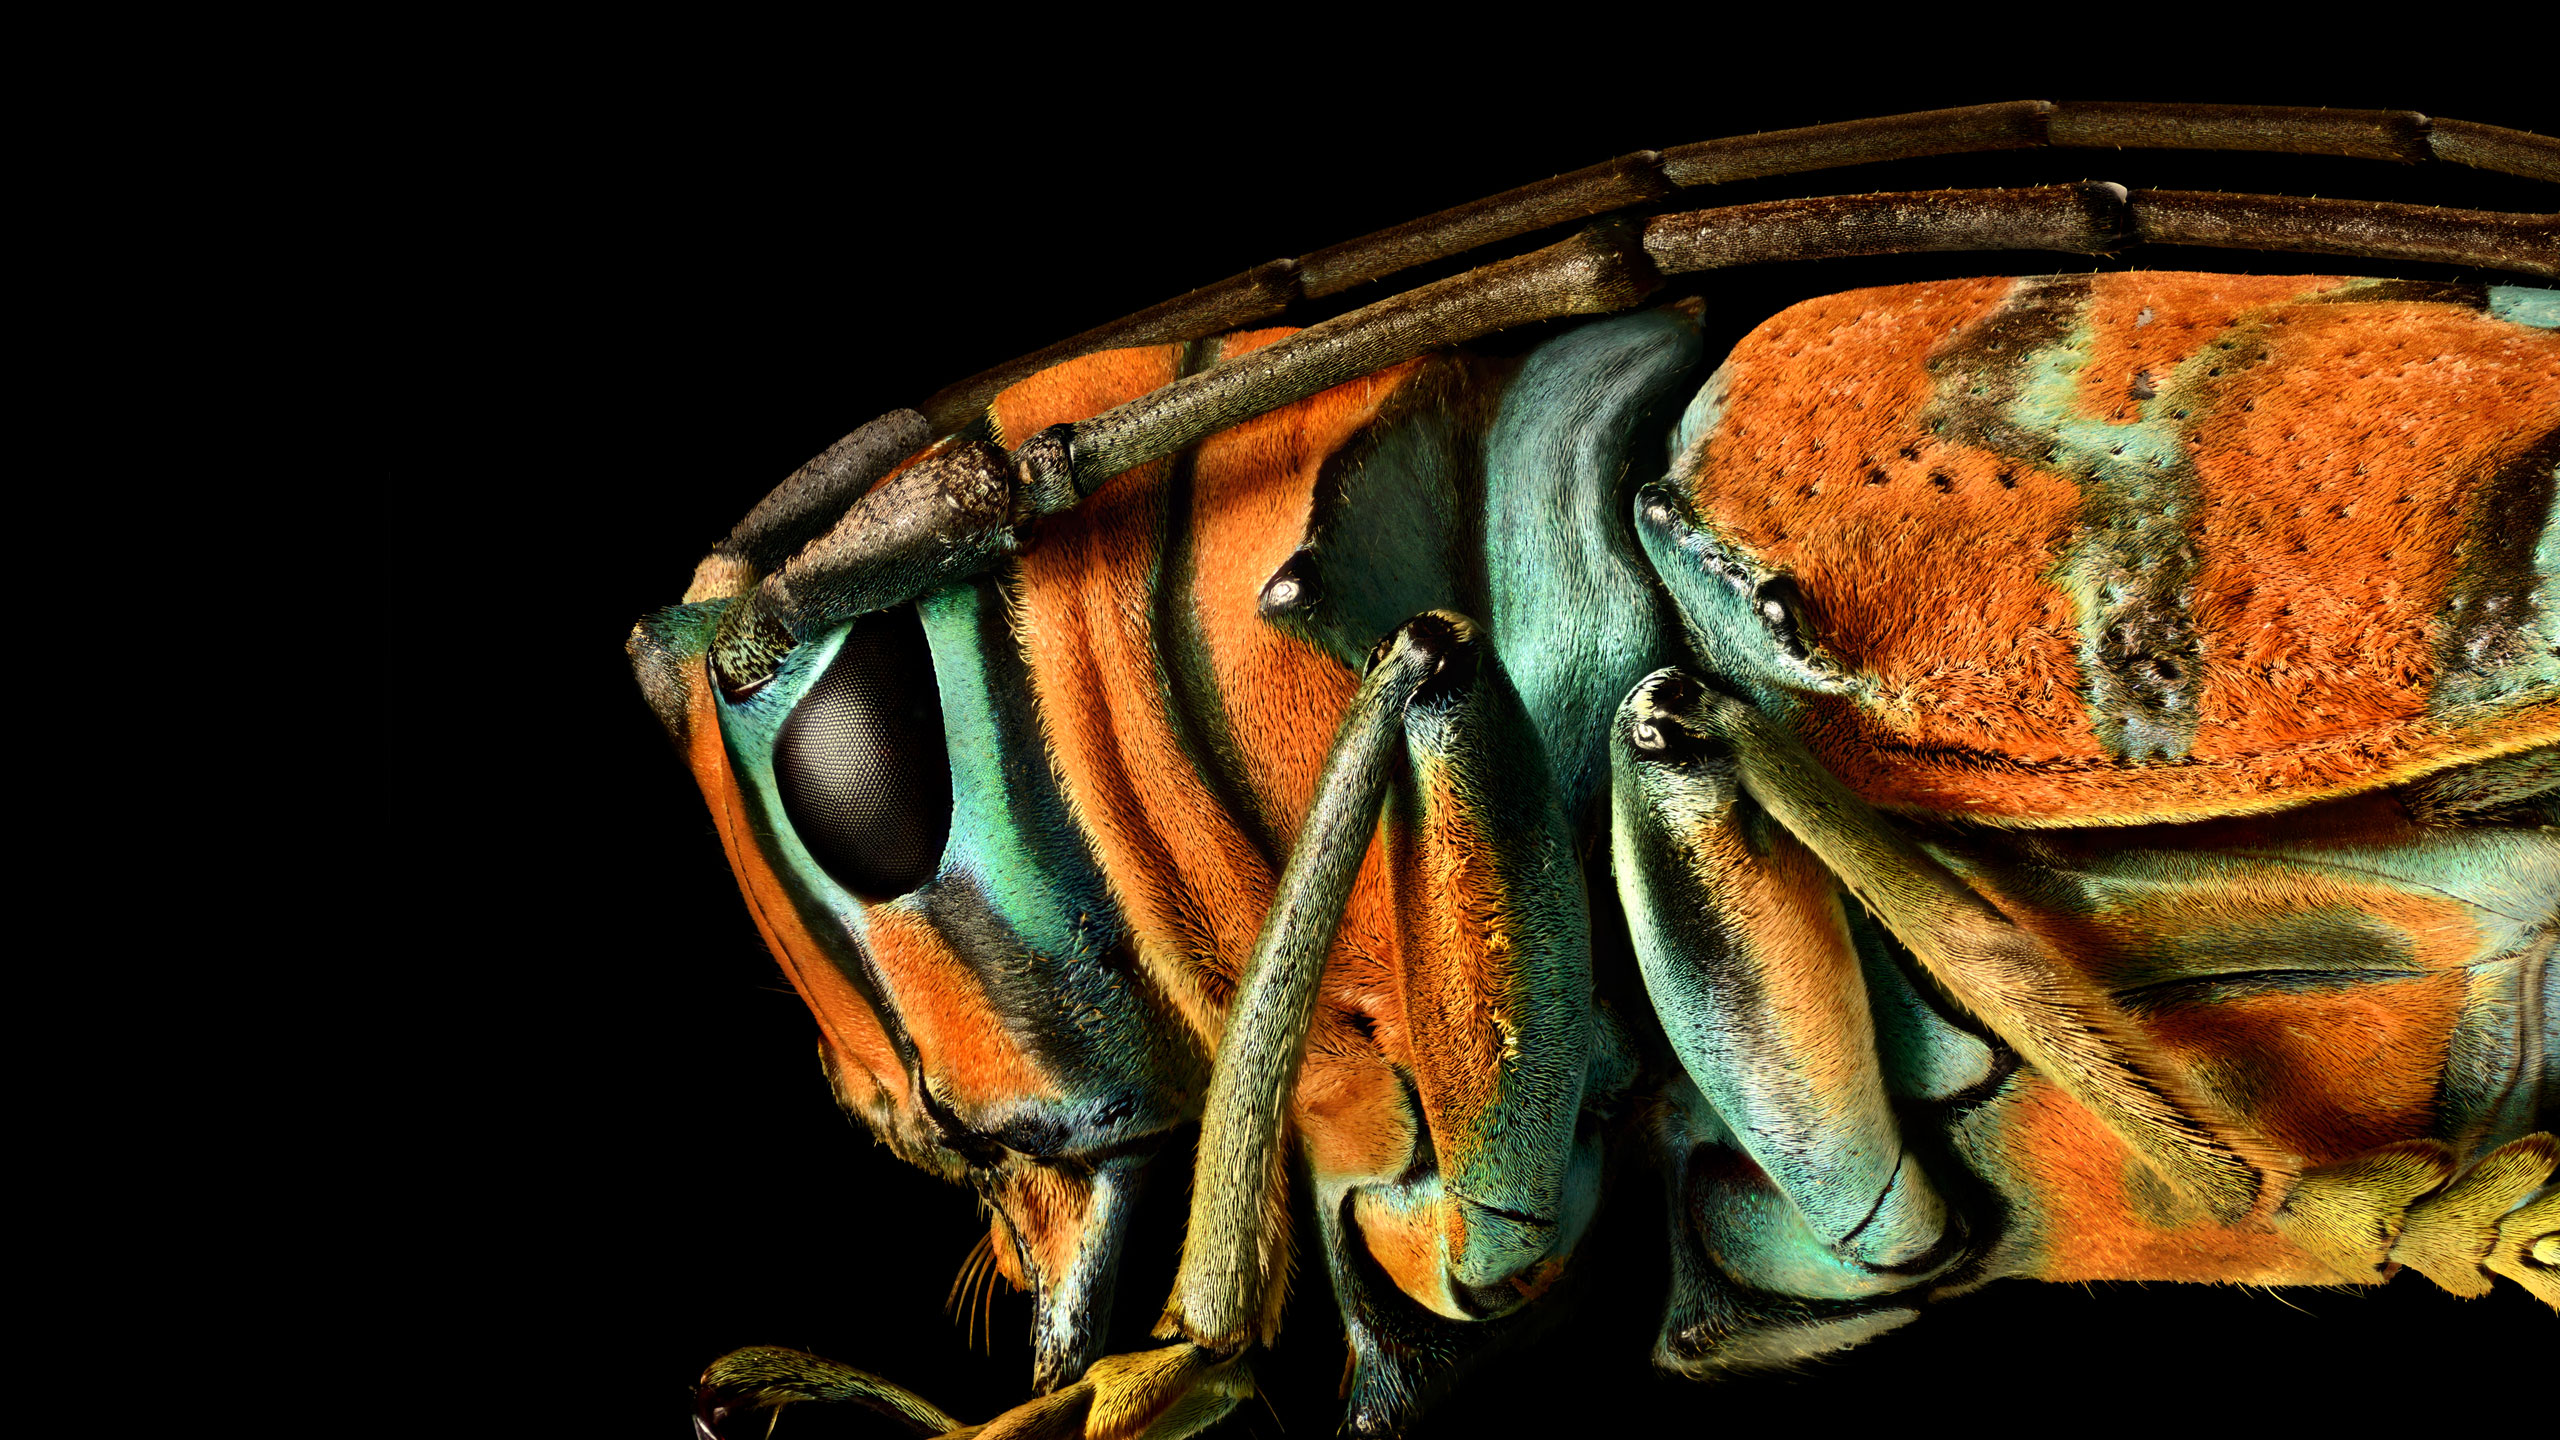 The Insect Portraits of Levon Biss